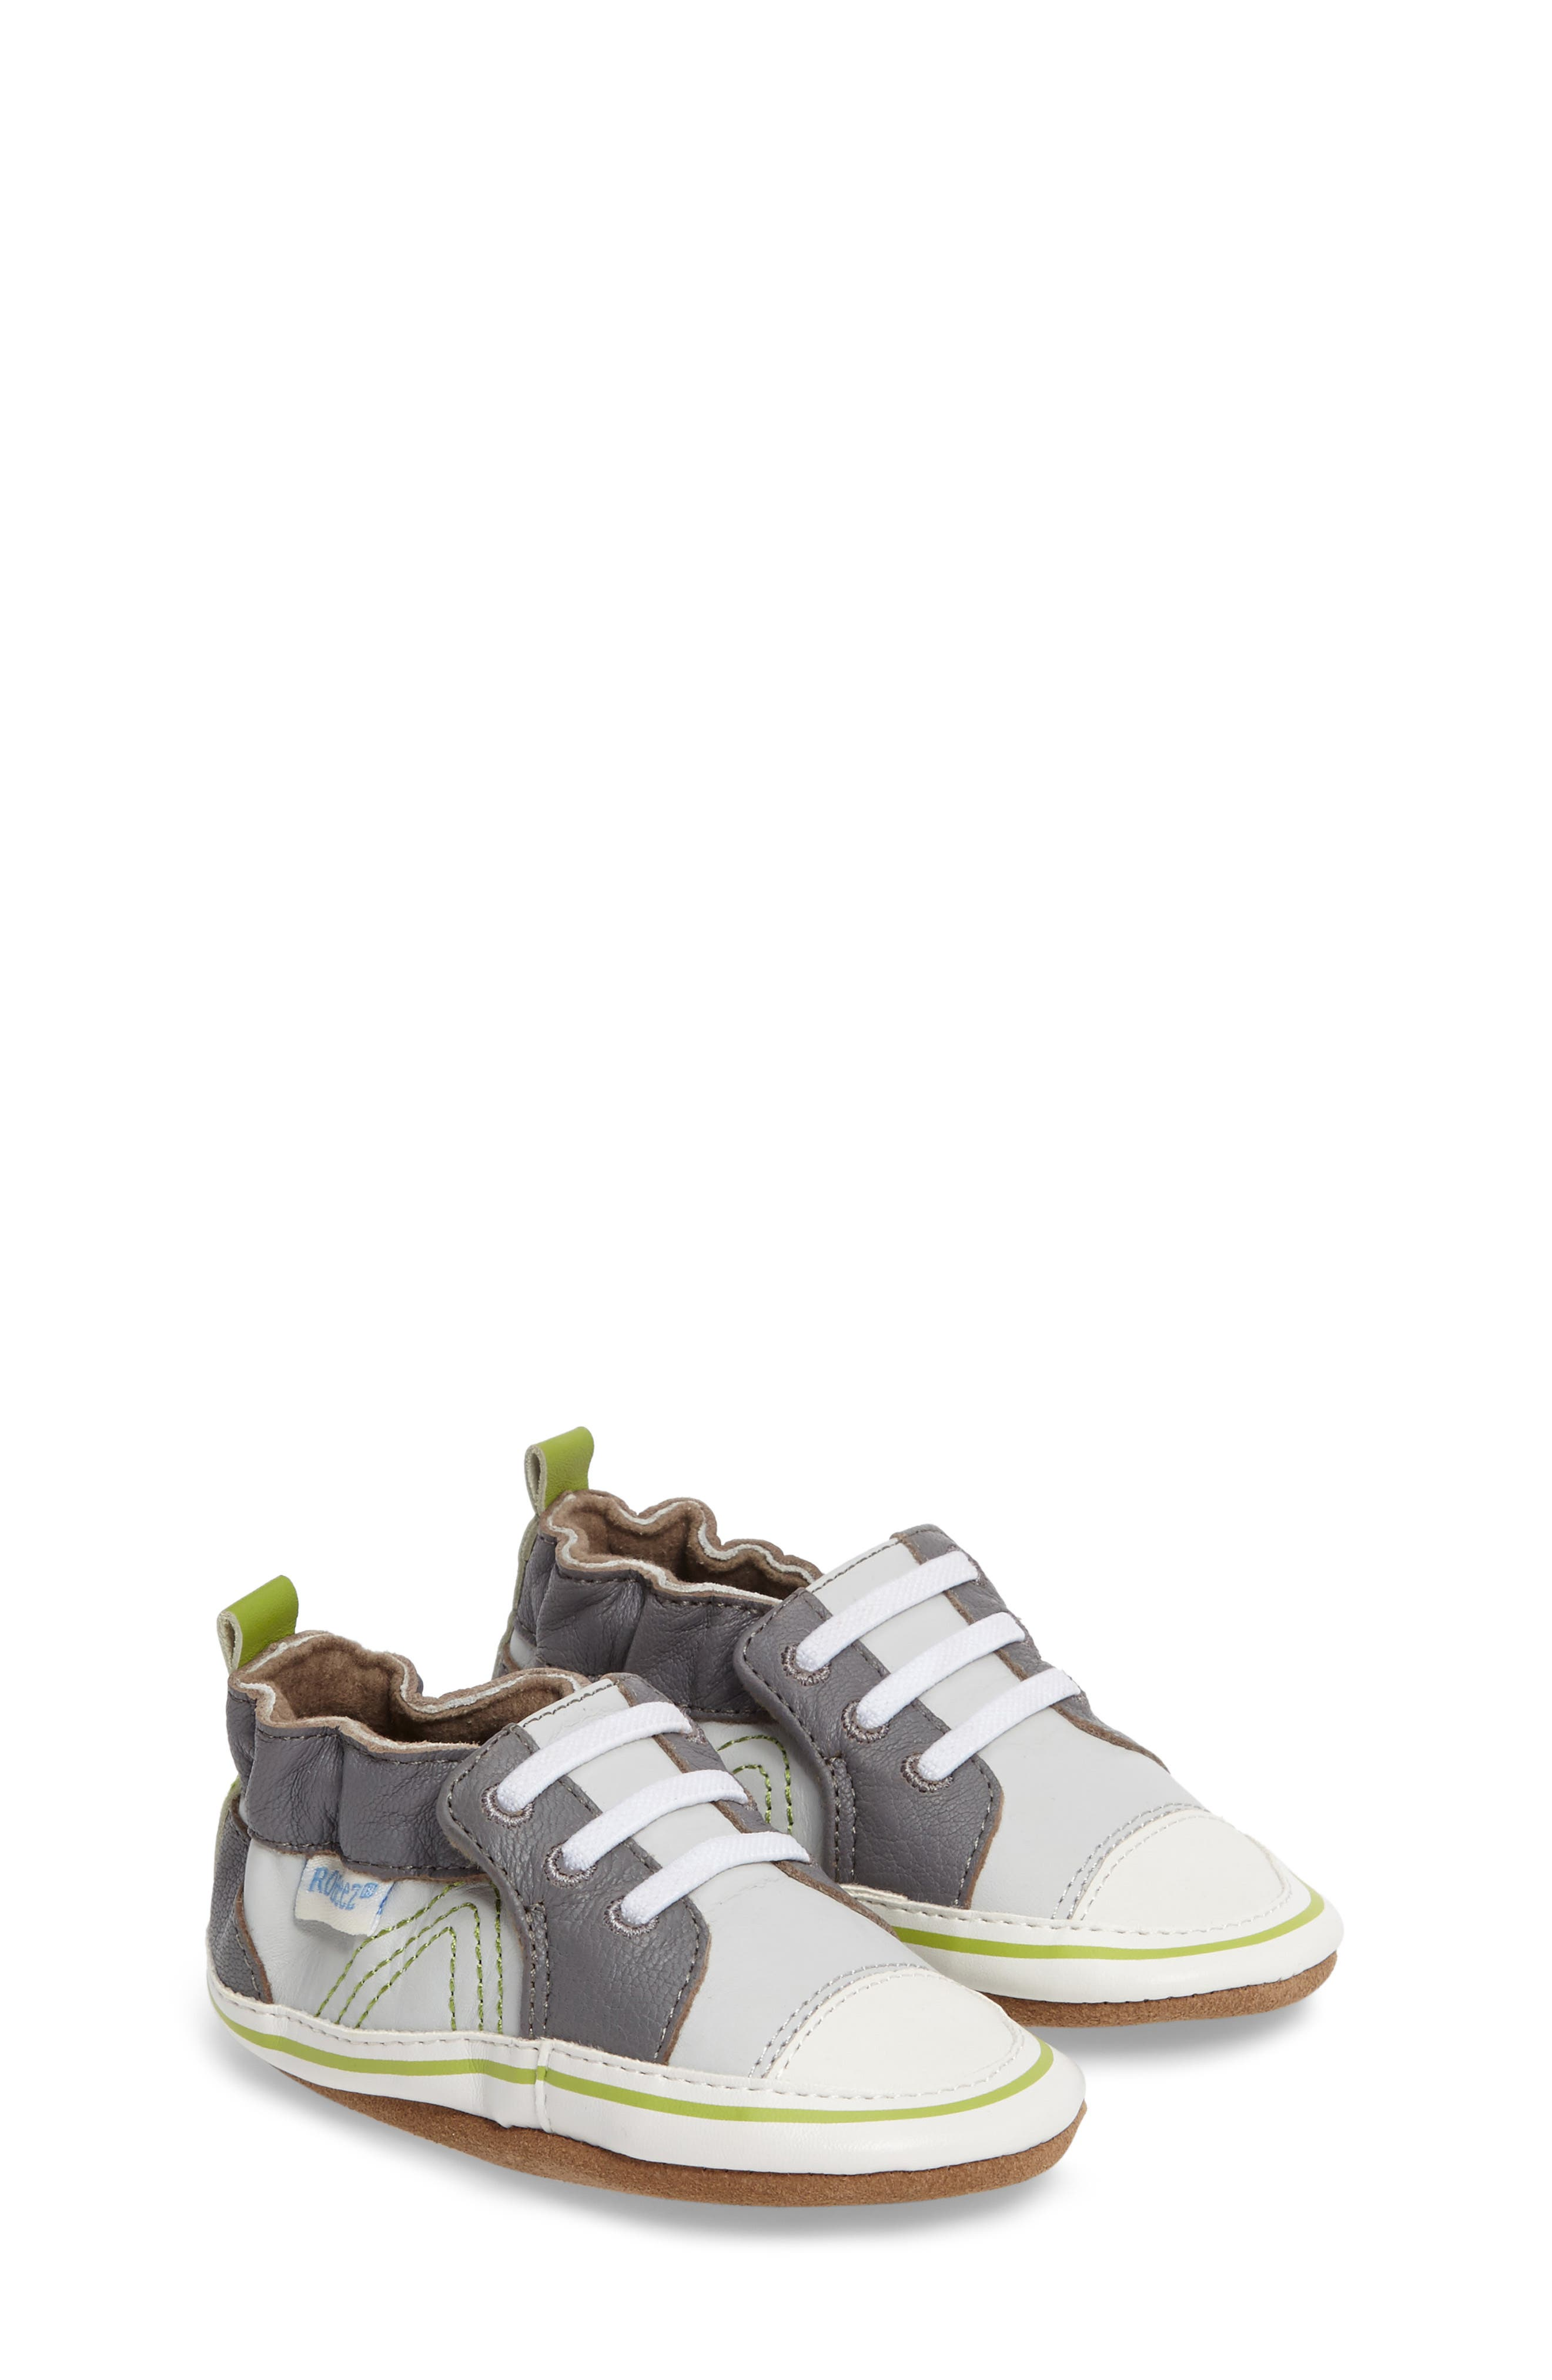 Trendy Trainer Sneaker Crib Shoe,                         Main,                         color, Grey Leather